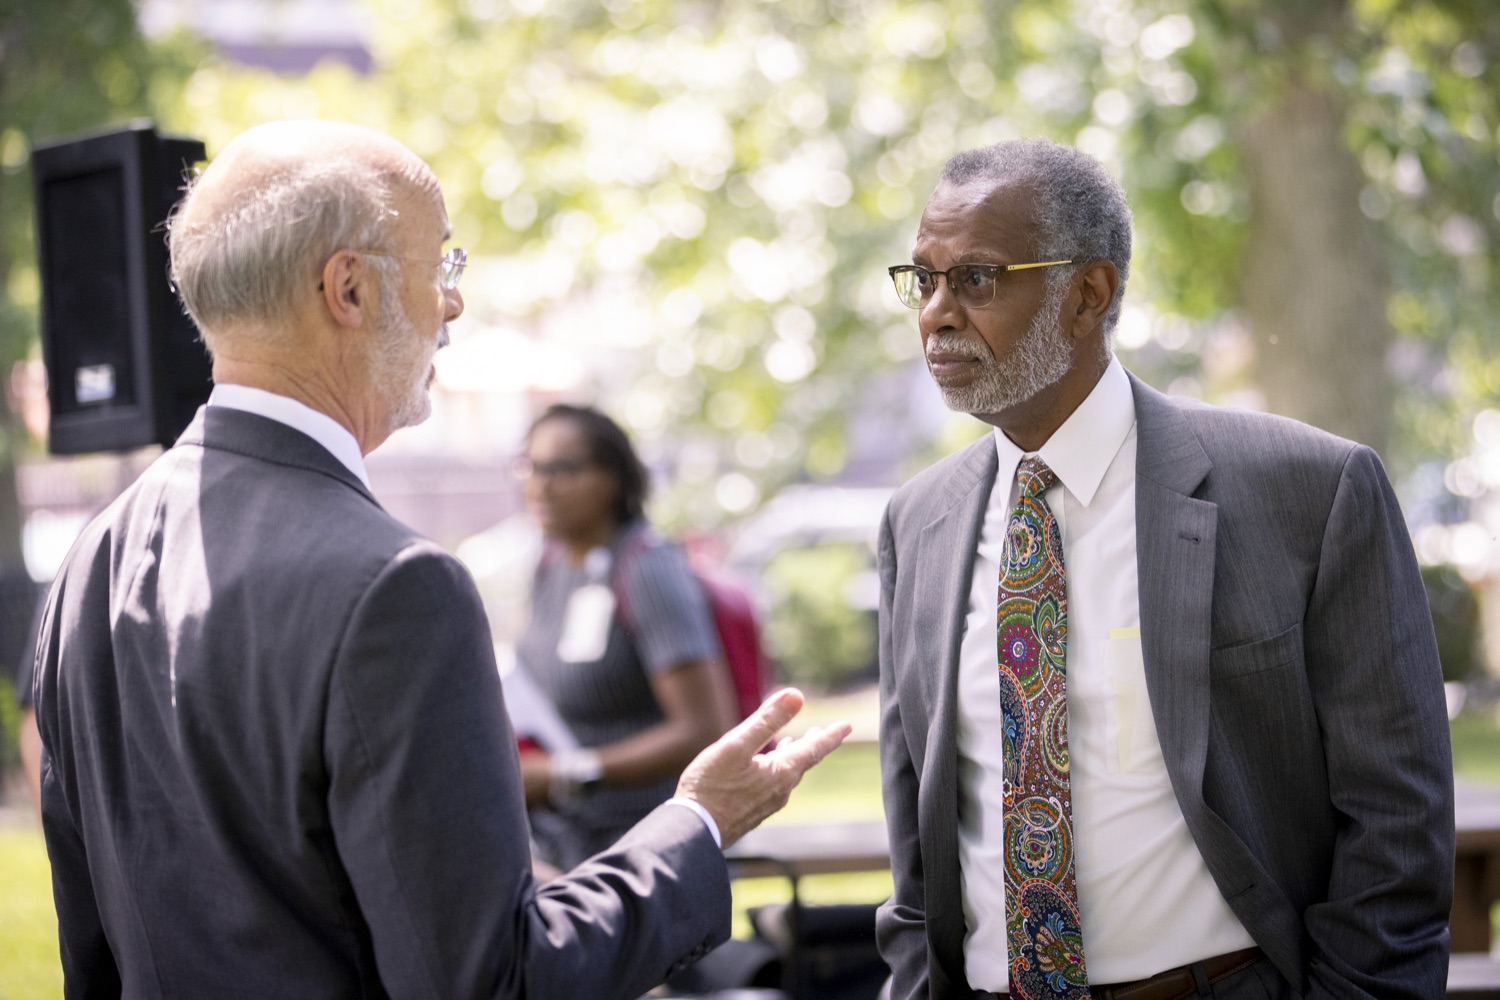 """<a href=""""https://filesource.wostreaming.net/commonwealthofpa/photo/18819_gov_reprodRights_dz_020.jpg"""" target=""""_blank"""">⇣Download Photo<br></a>Pennsylvania Governor Tom Wolf speaking with Pennsylvania State Senator Art Haywood.  Governor Wolf will discuss proposed anti-choice legislation that is moving through the House of Representatives and reaffirm that he will veto this damaging legislation.  JUNE 10, 2021 - PHILADELPHIA, PA"""